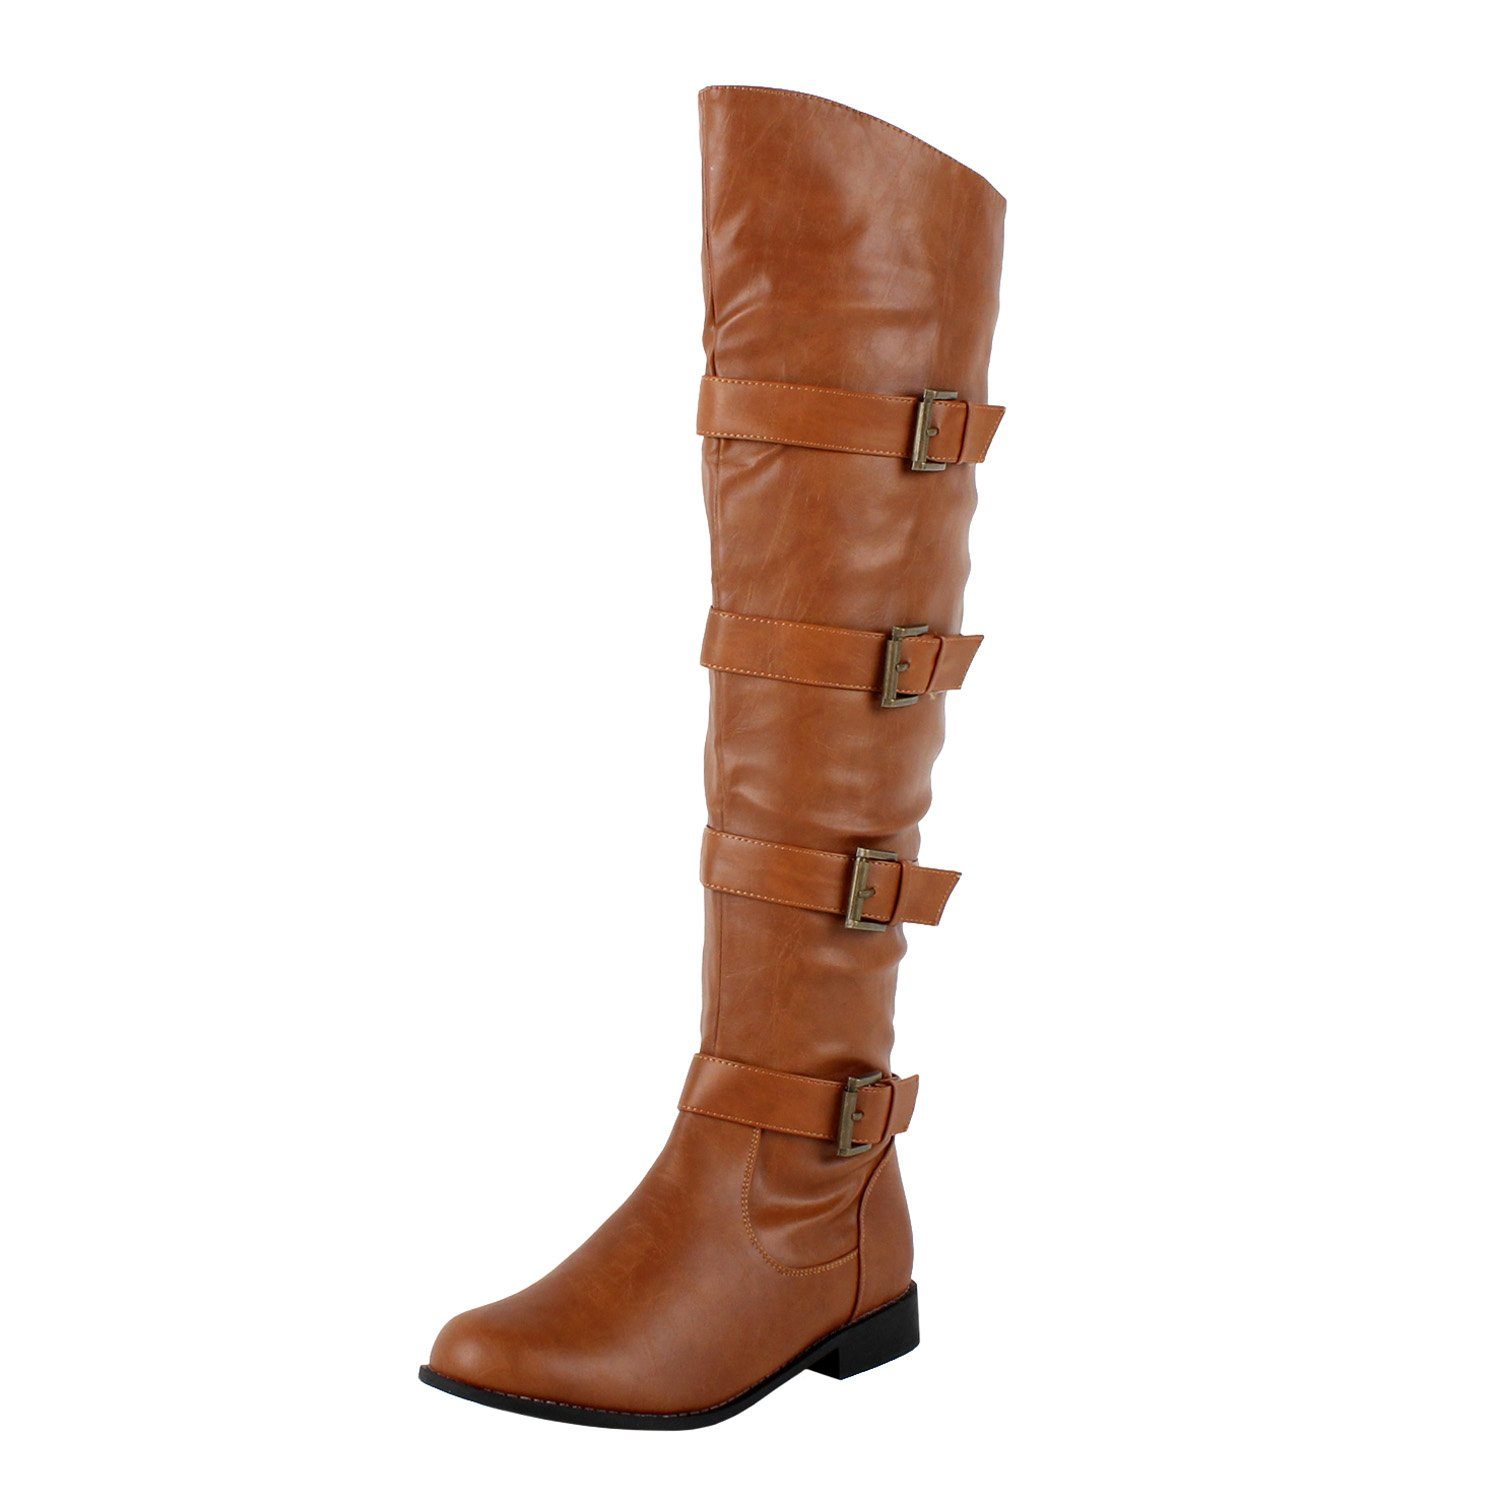 Women's Tehran Buckle Multi-Straps Thigh High Tan Faux Leather Boots